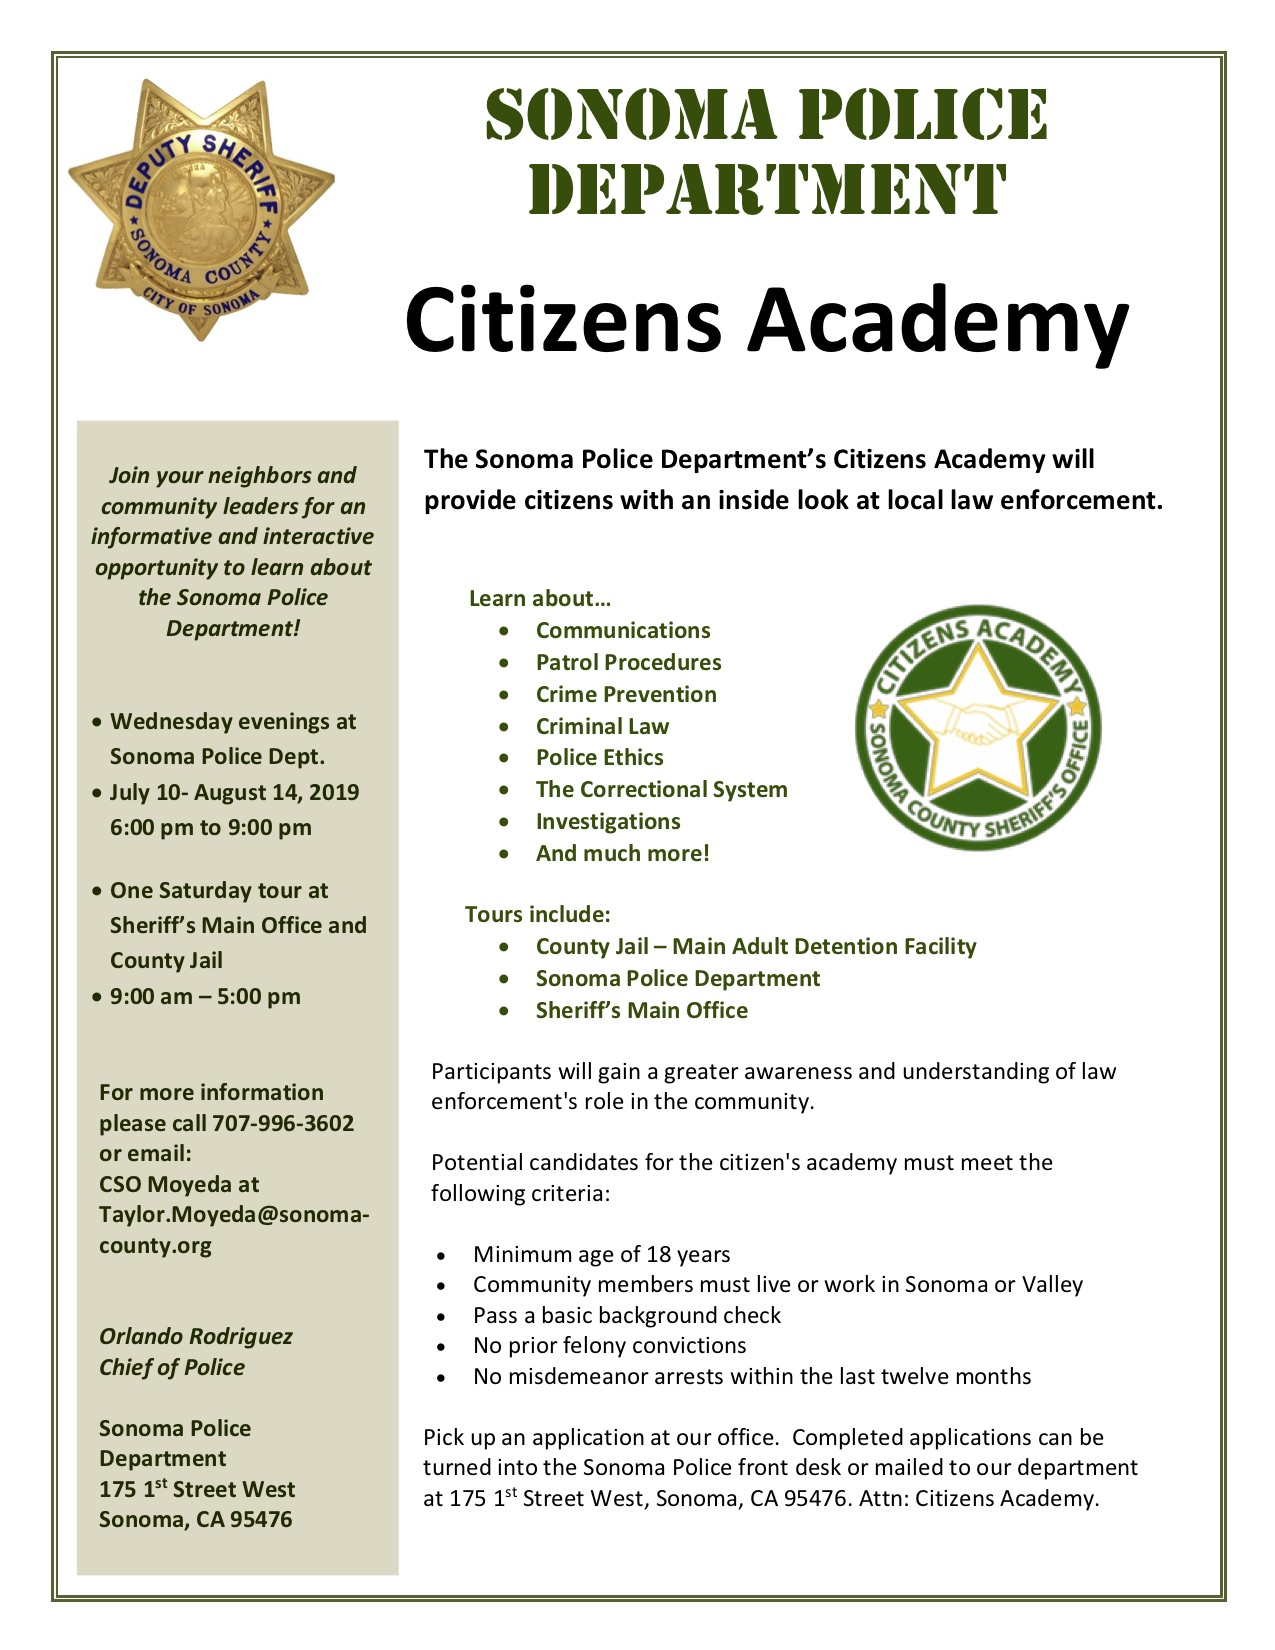 Sonoma Police Department Citizens Academy Now Accepting Applications